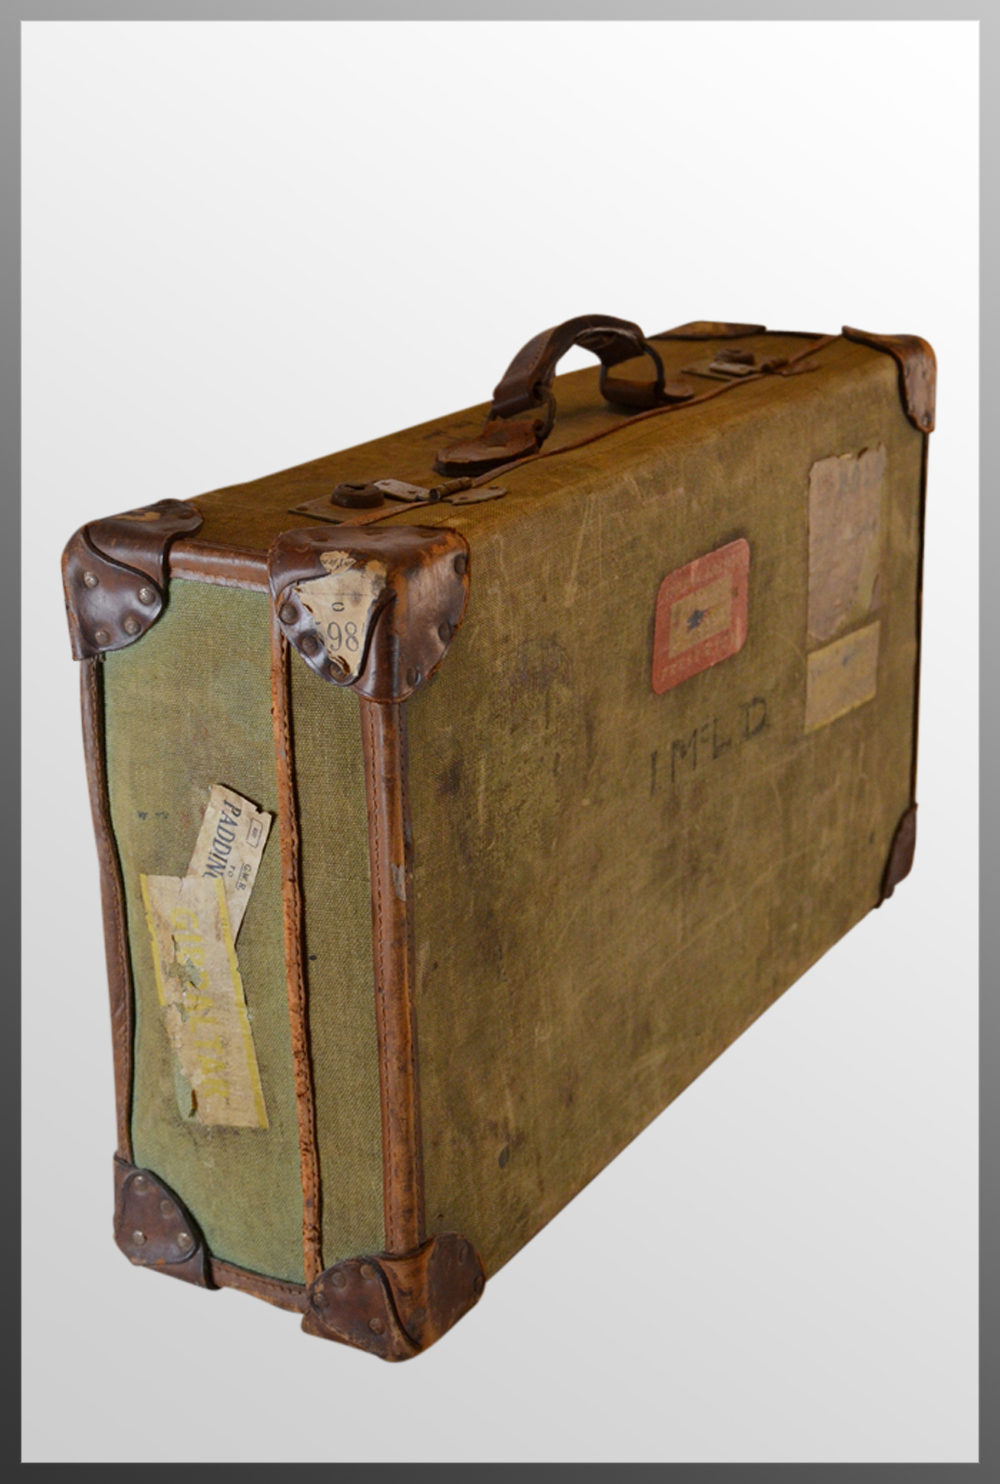 Antiques atlas vintage leather bound suitcase travel - Vintage suitcase ...